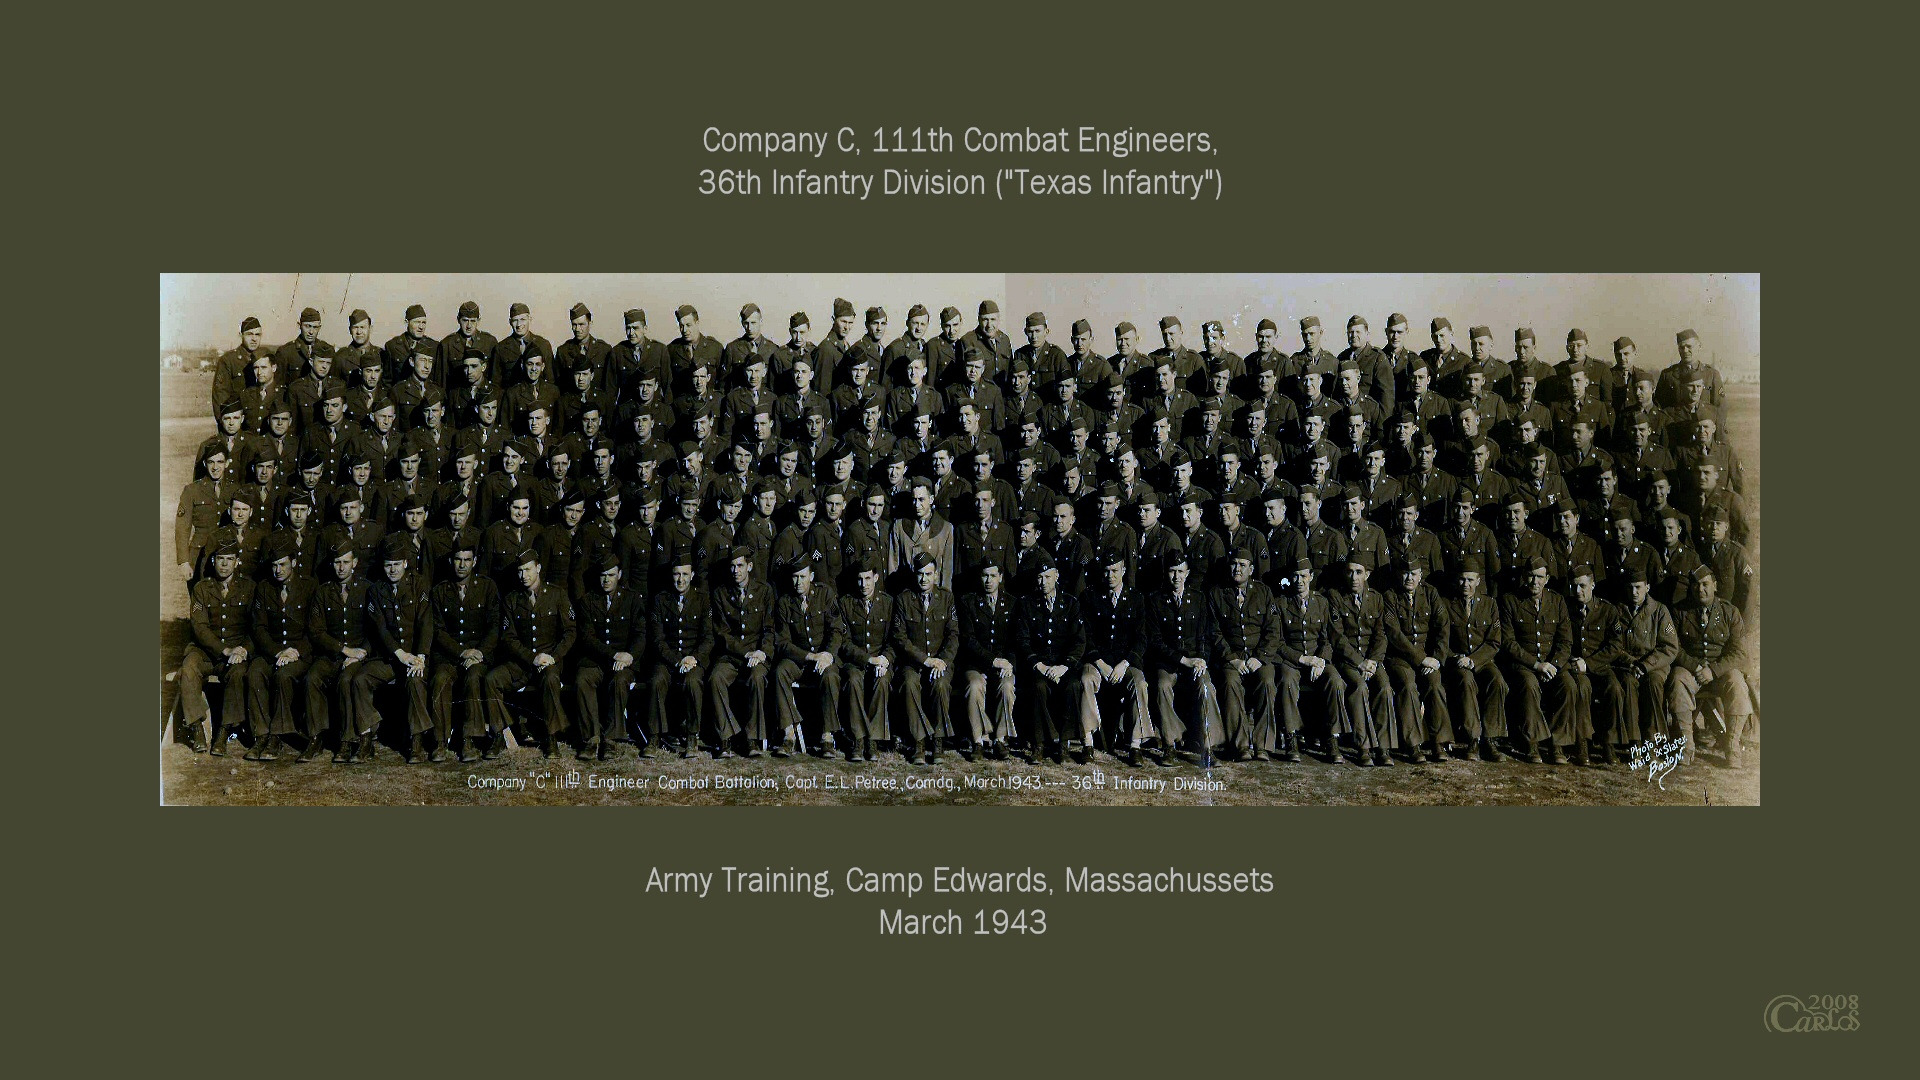 Cw 111th Engineers Group